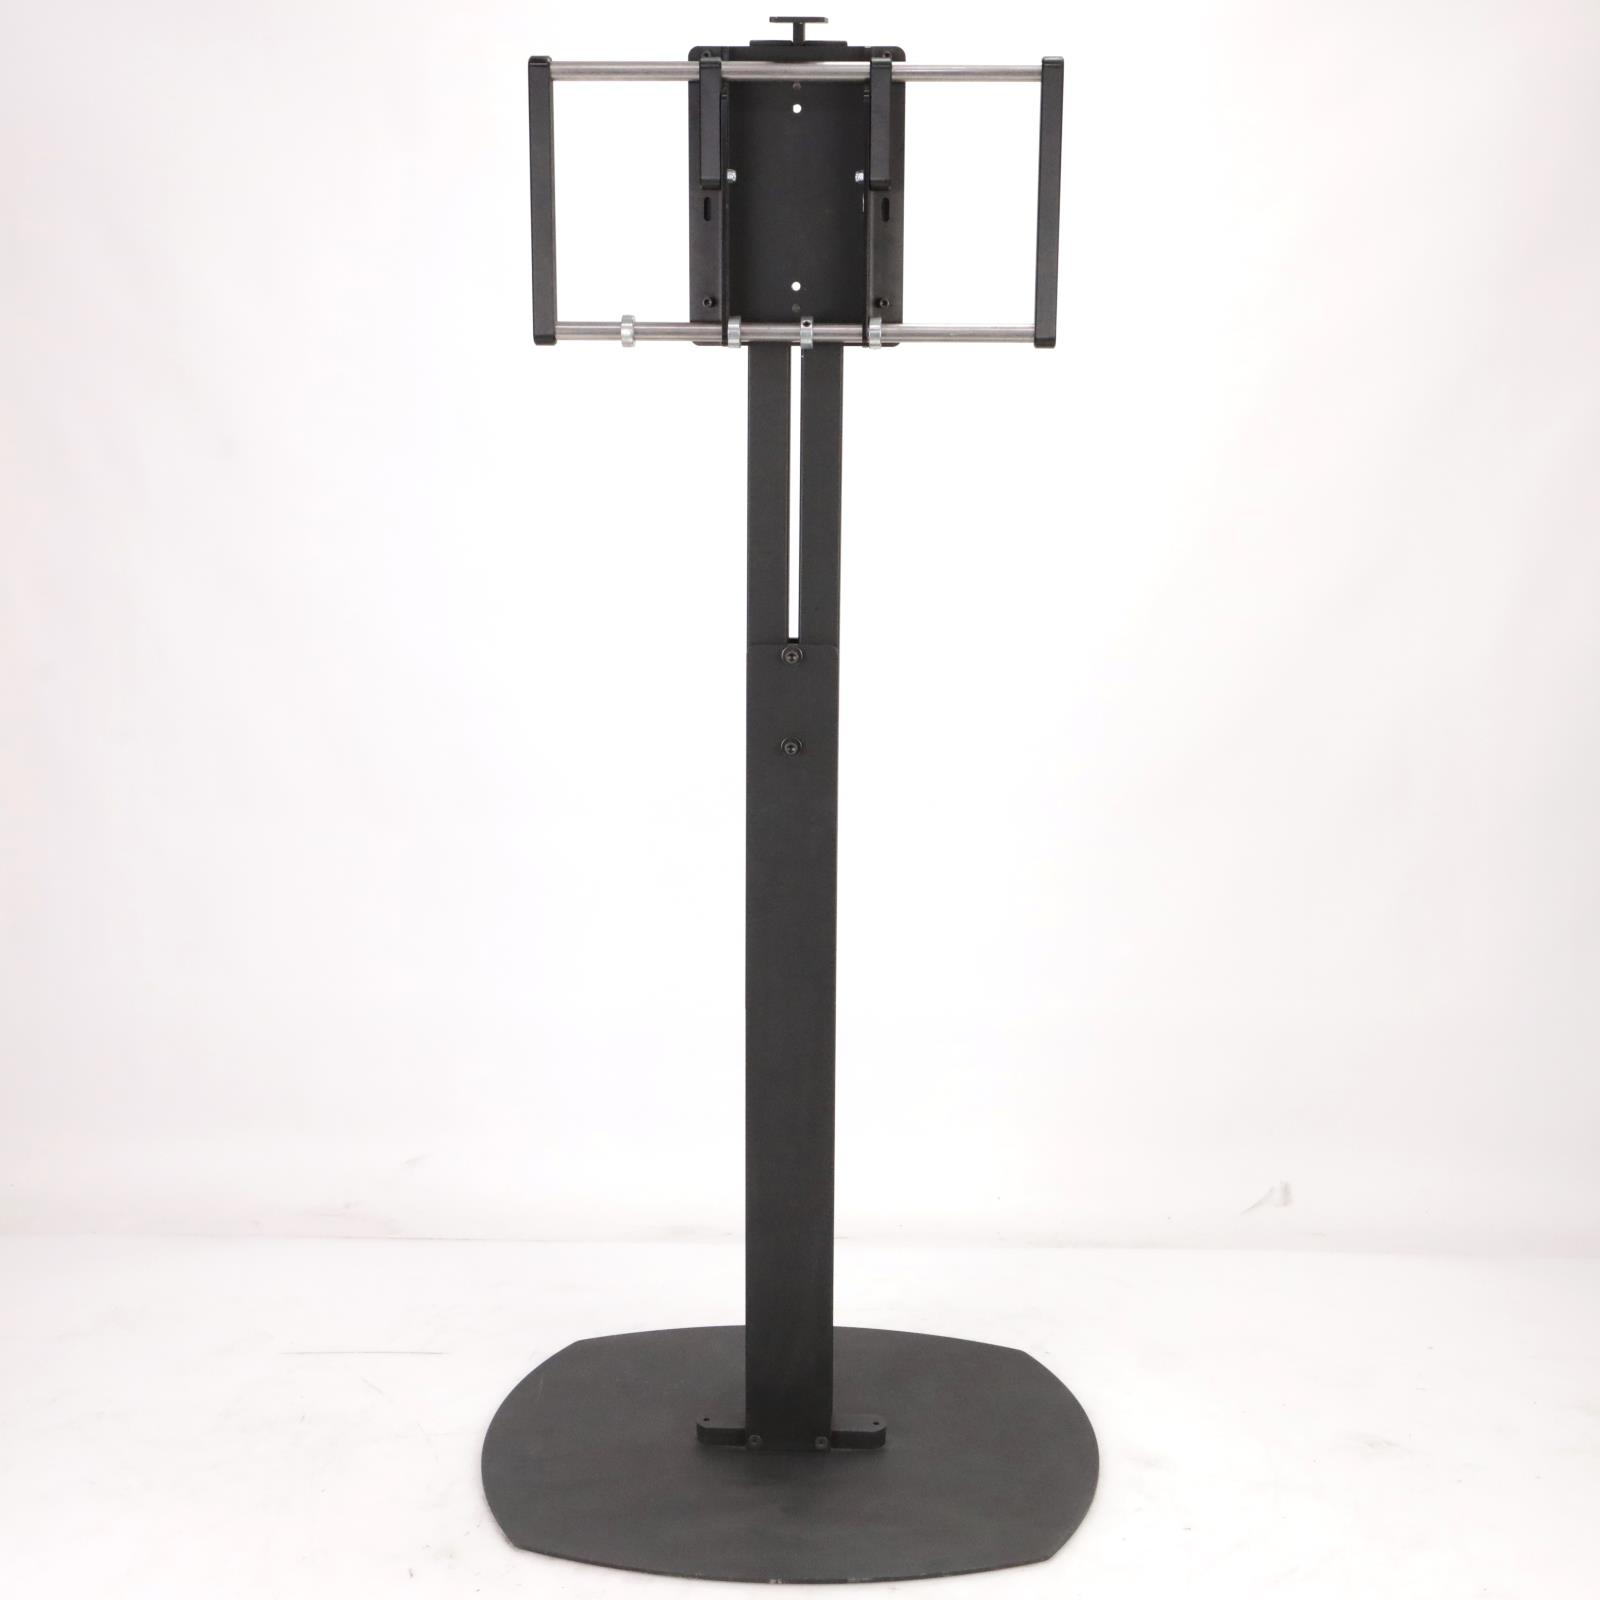 Sound Anchor Heavy-Duty Floor Stand for Flat TV Monitor Screen Display #39142